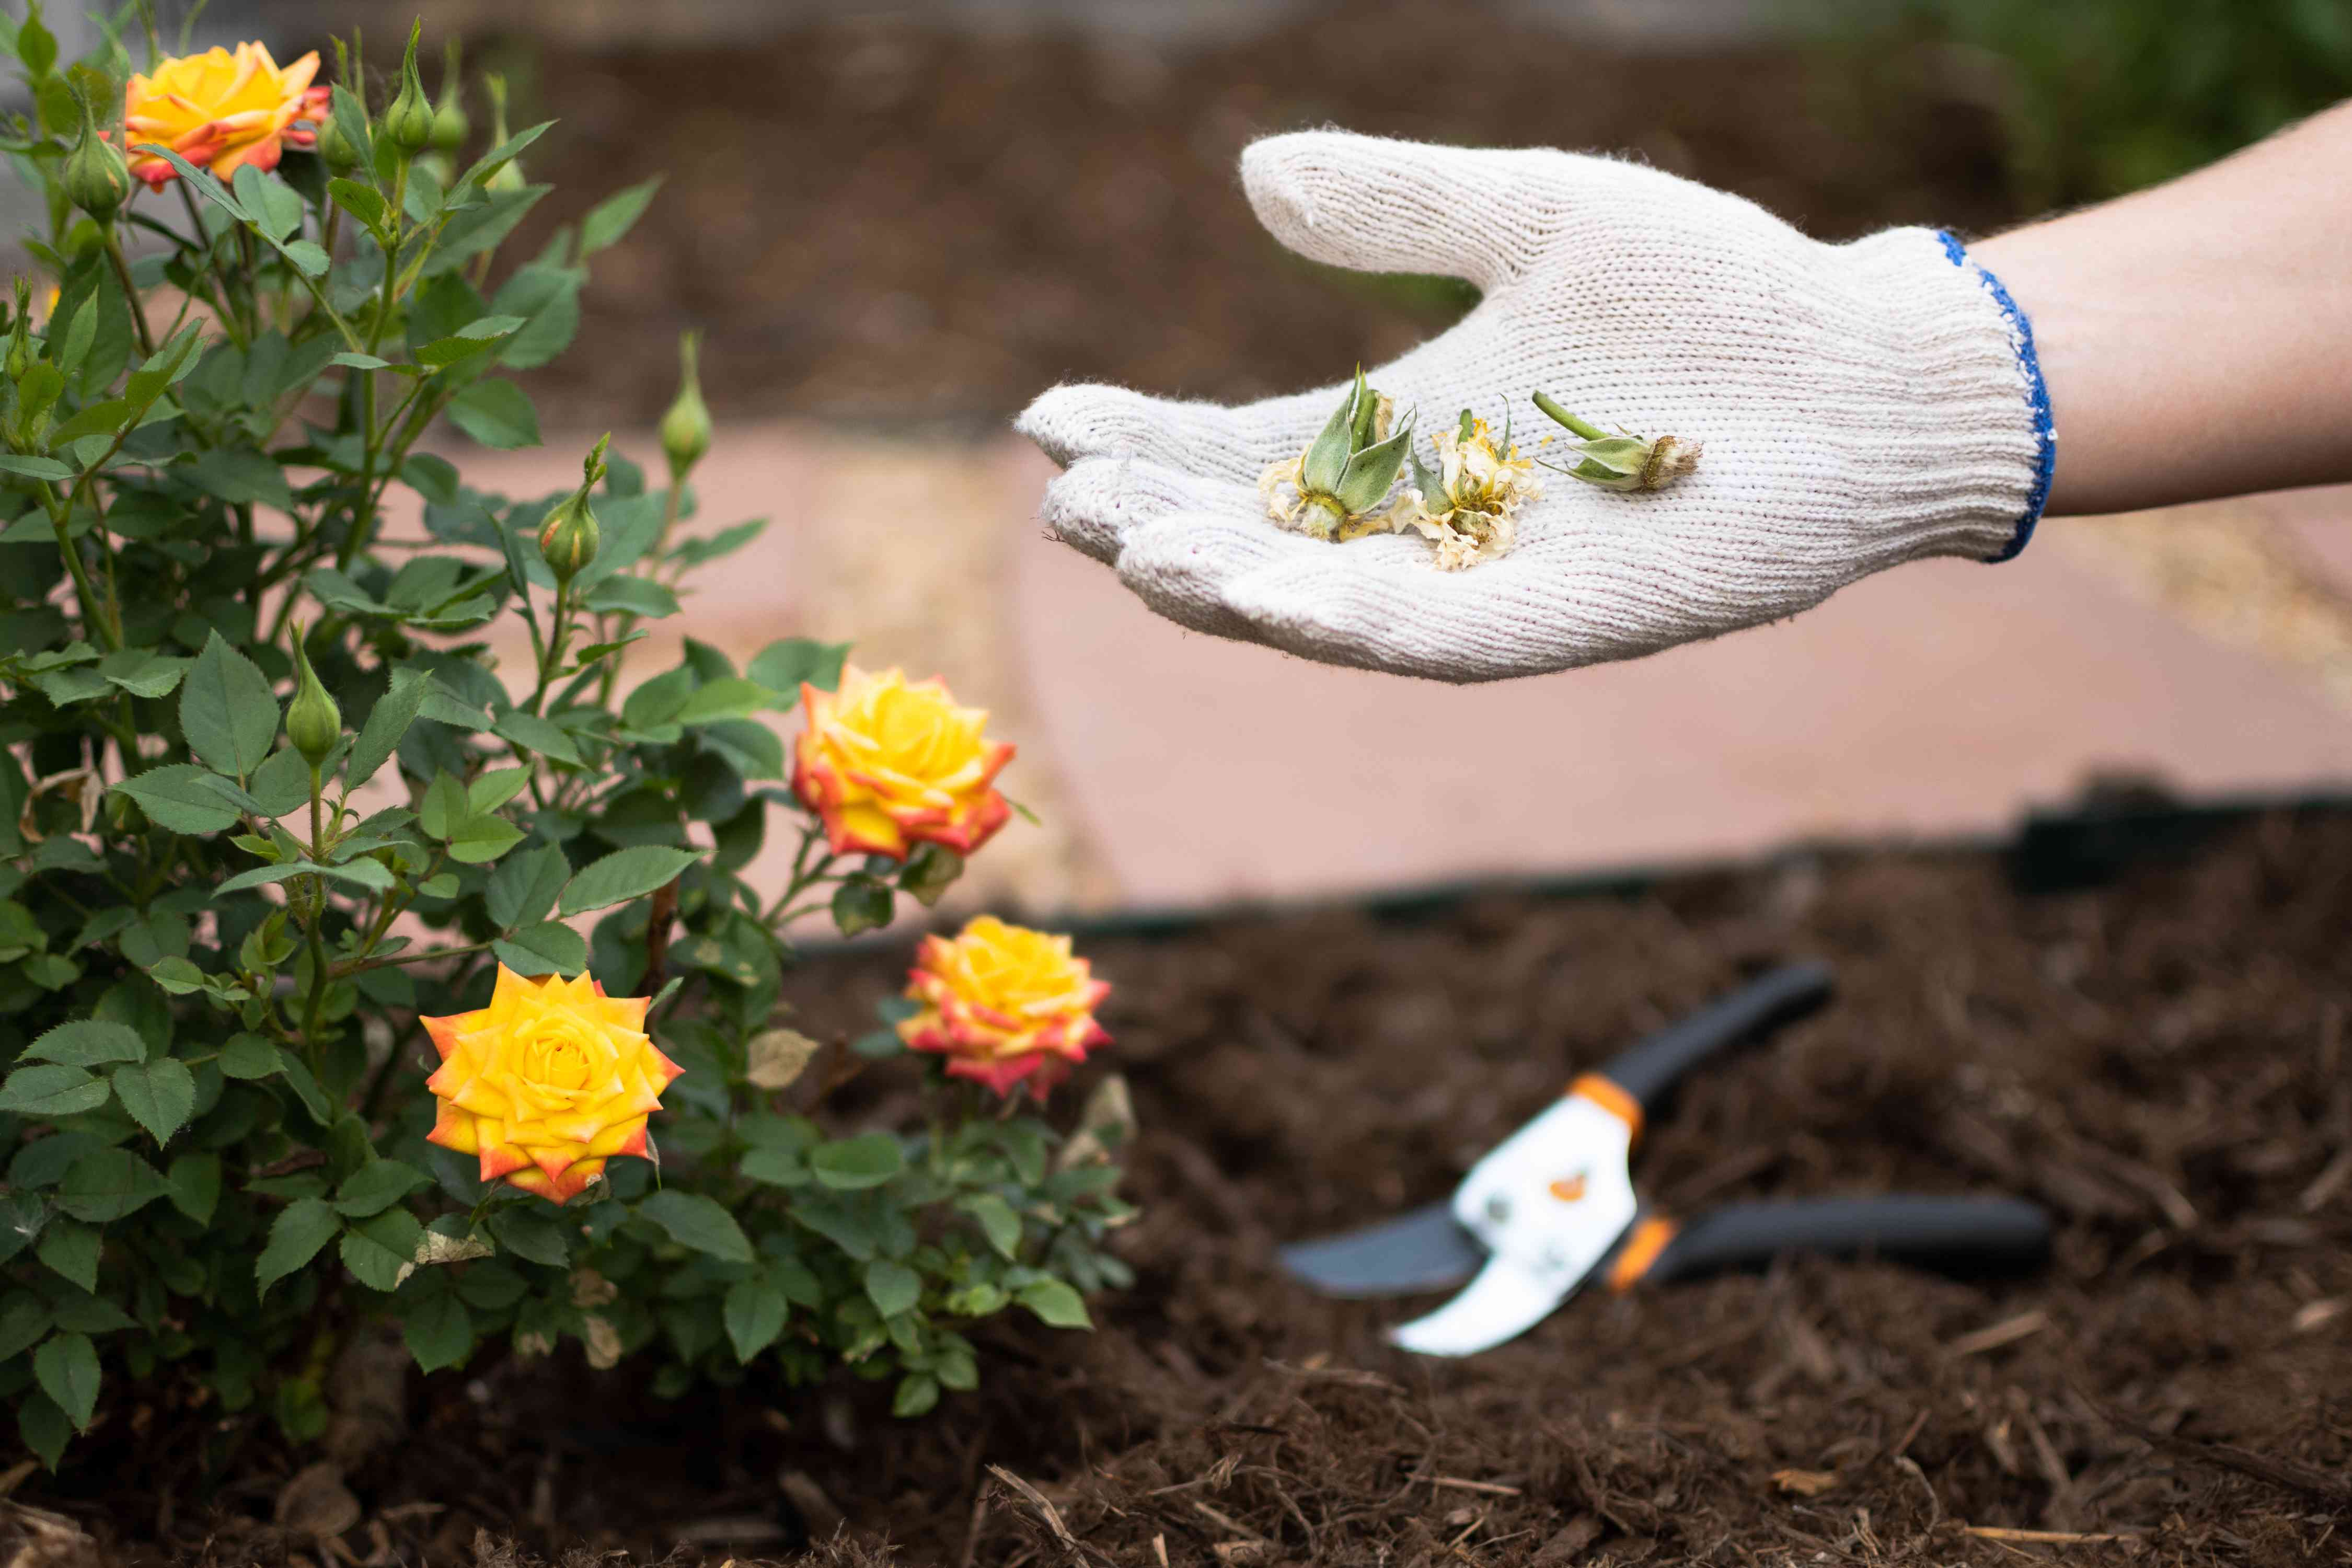 Deadheaded faded roses in gardeners hand next to yellow rose bush